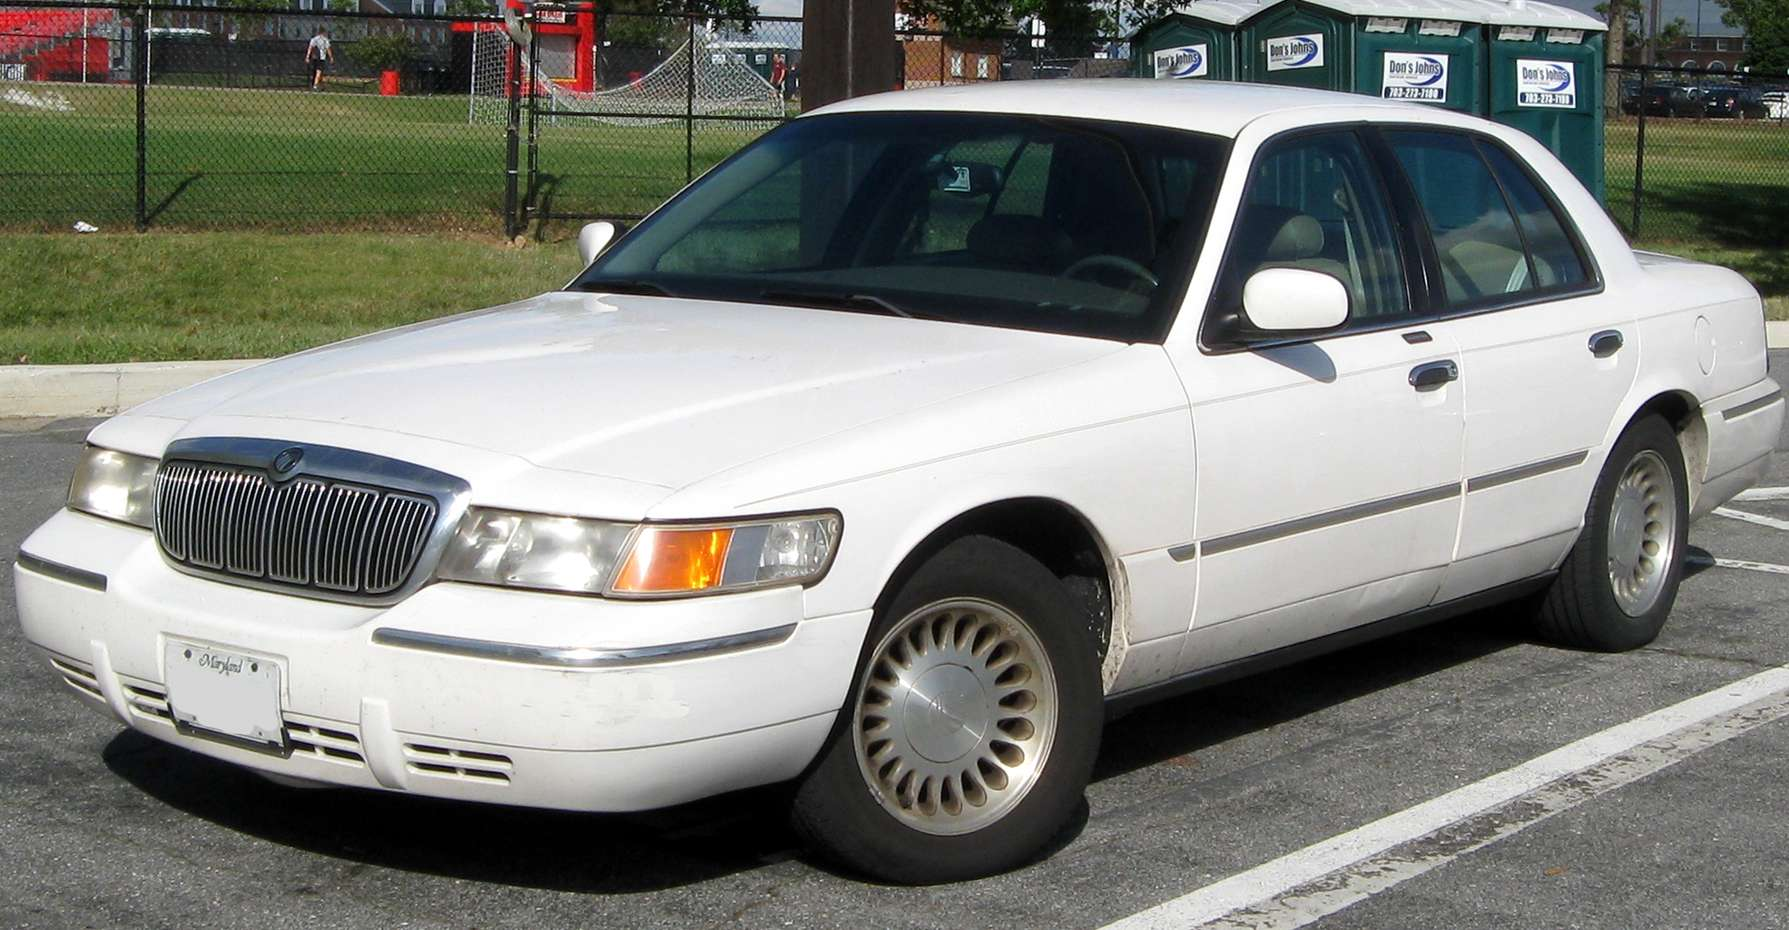 Mercury_Grand_Marquis